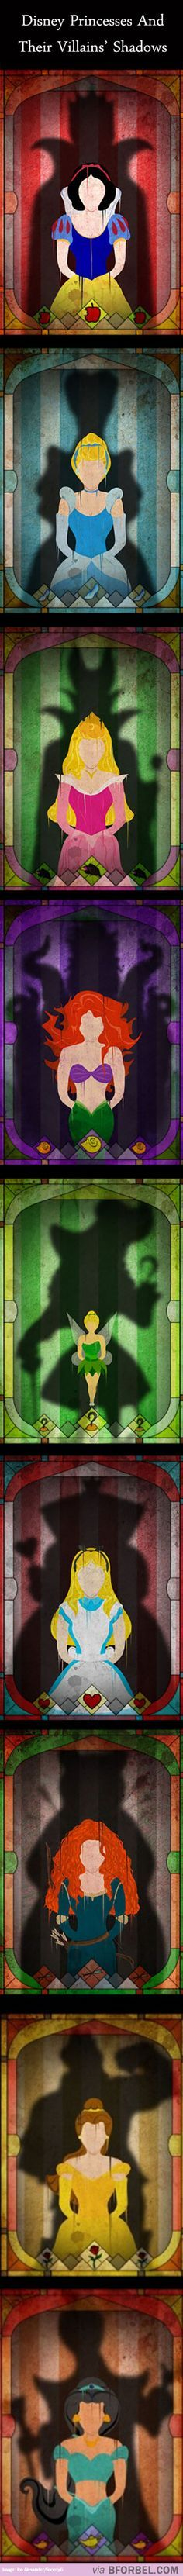 9 Disney Princesses Haunted By The Shadows Of Their Villains... Pretty